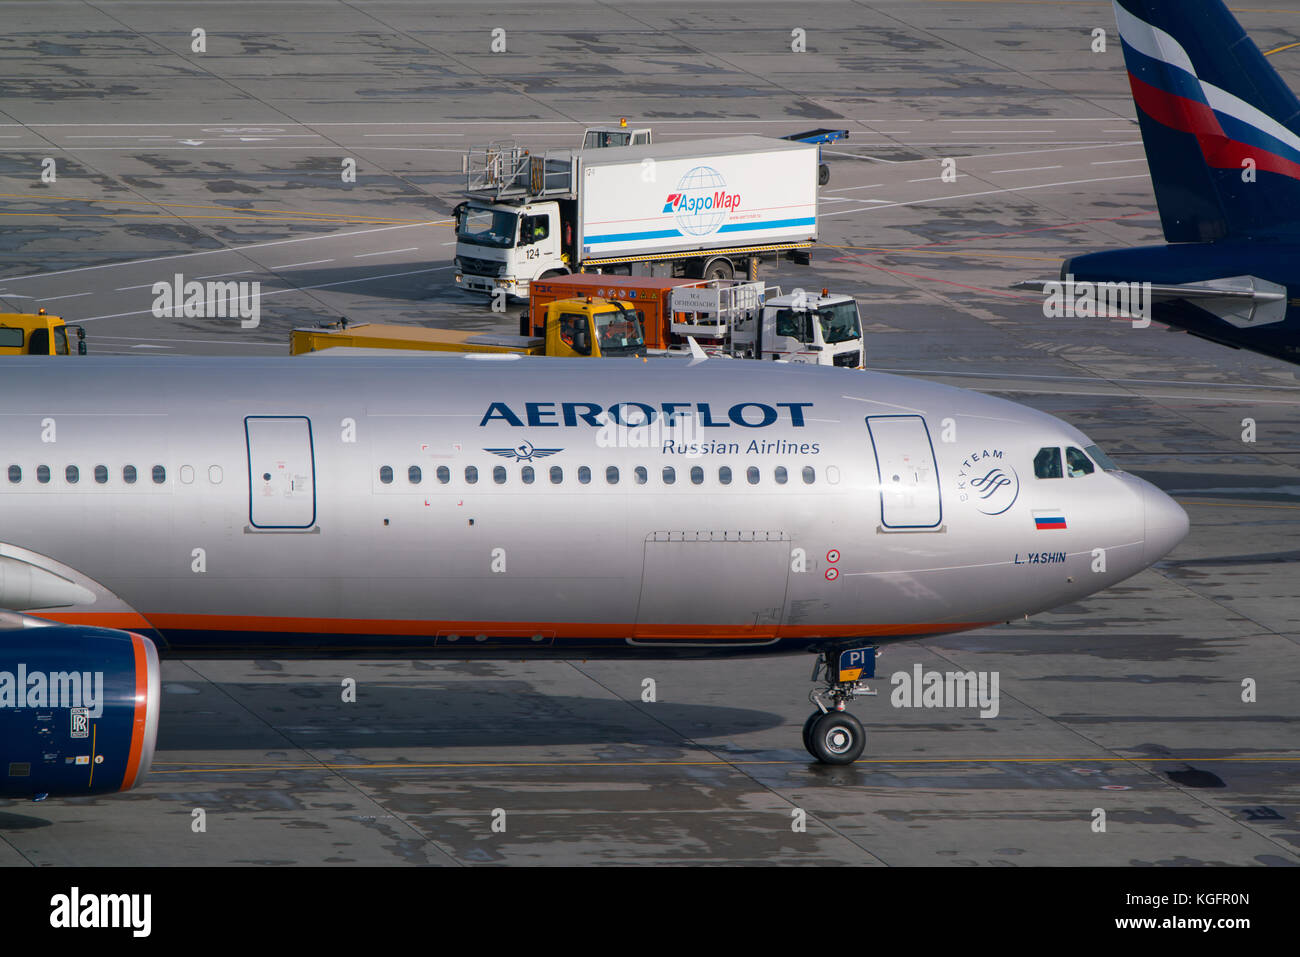 Moscow, Sheremetyevo airport, Russia - September 24, 2016: Aeroflot - Russian Airlines Airbus A330-343X,VQ-BPI taxiing - Stock Image